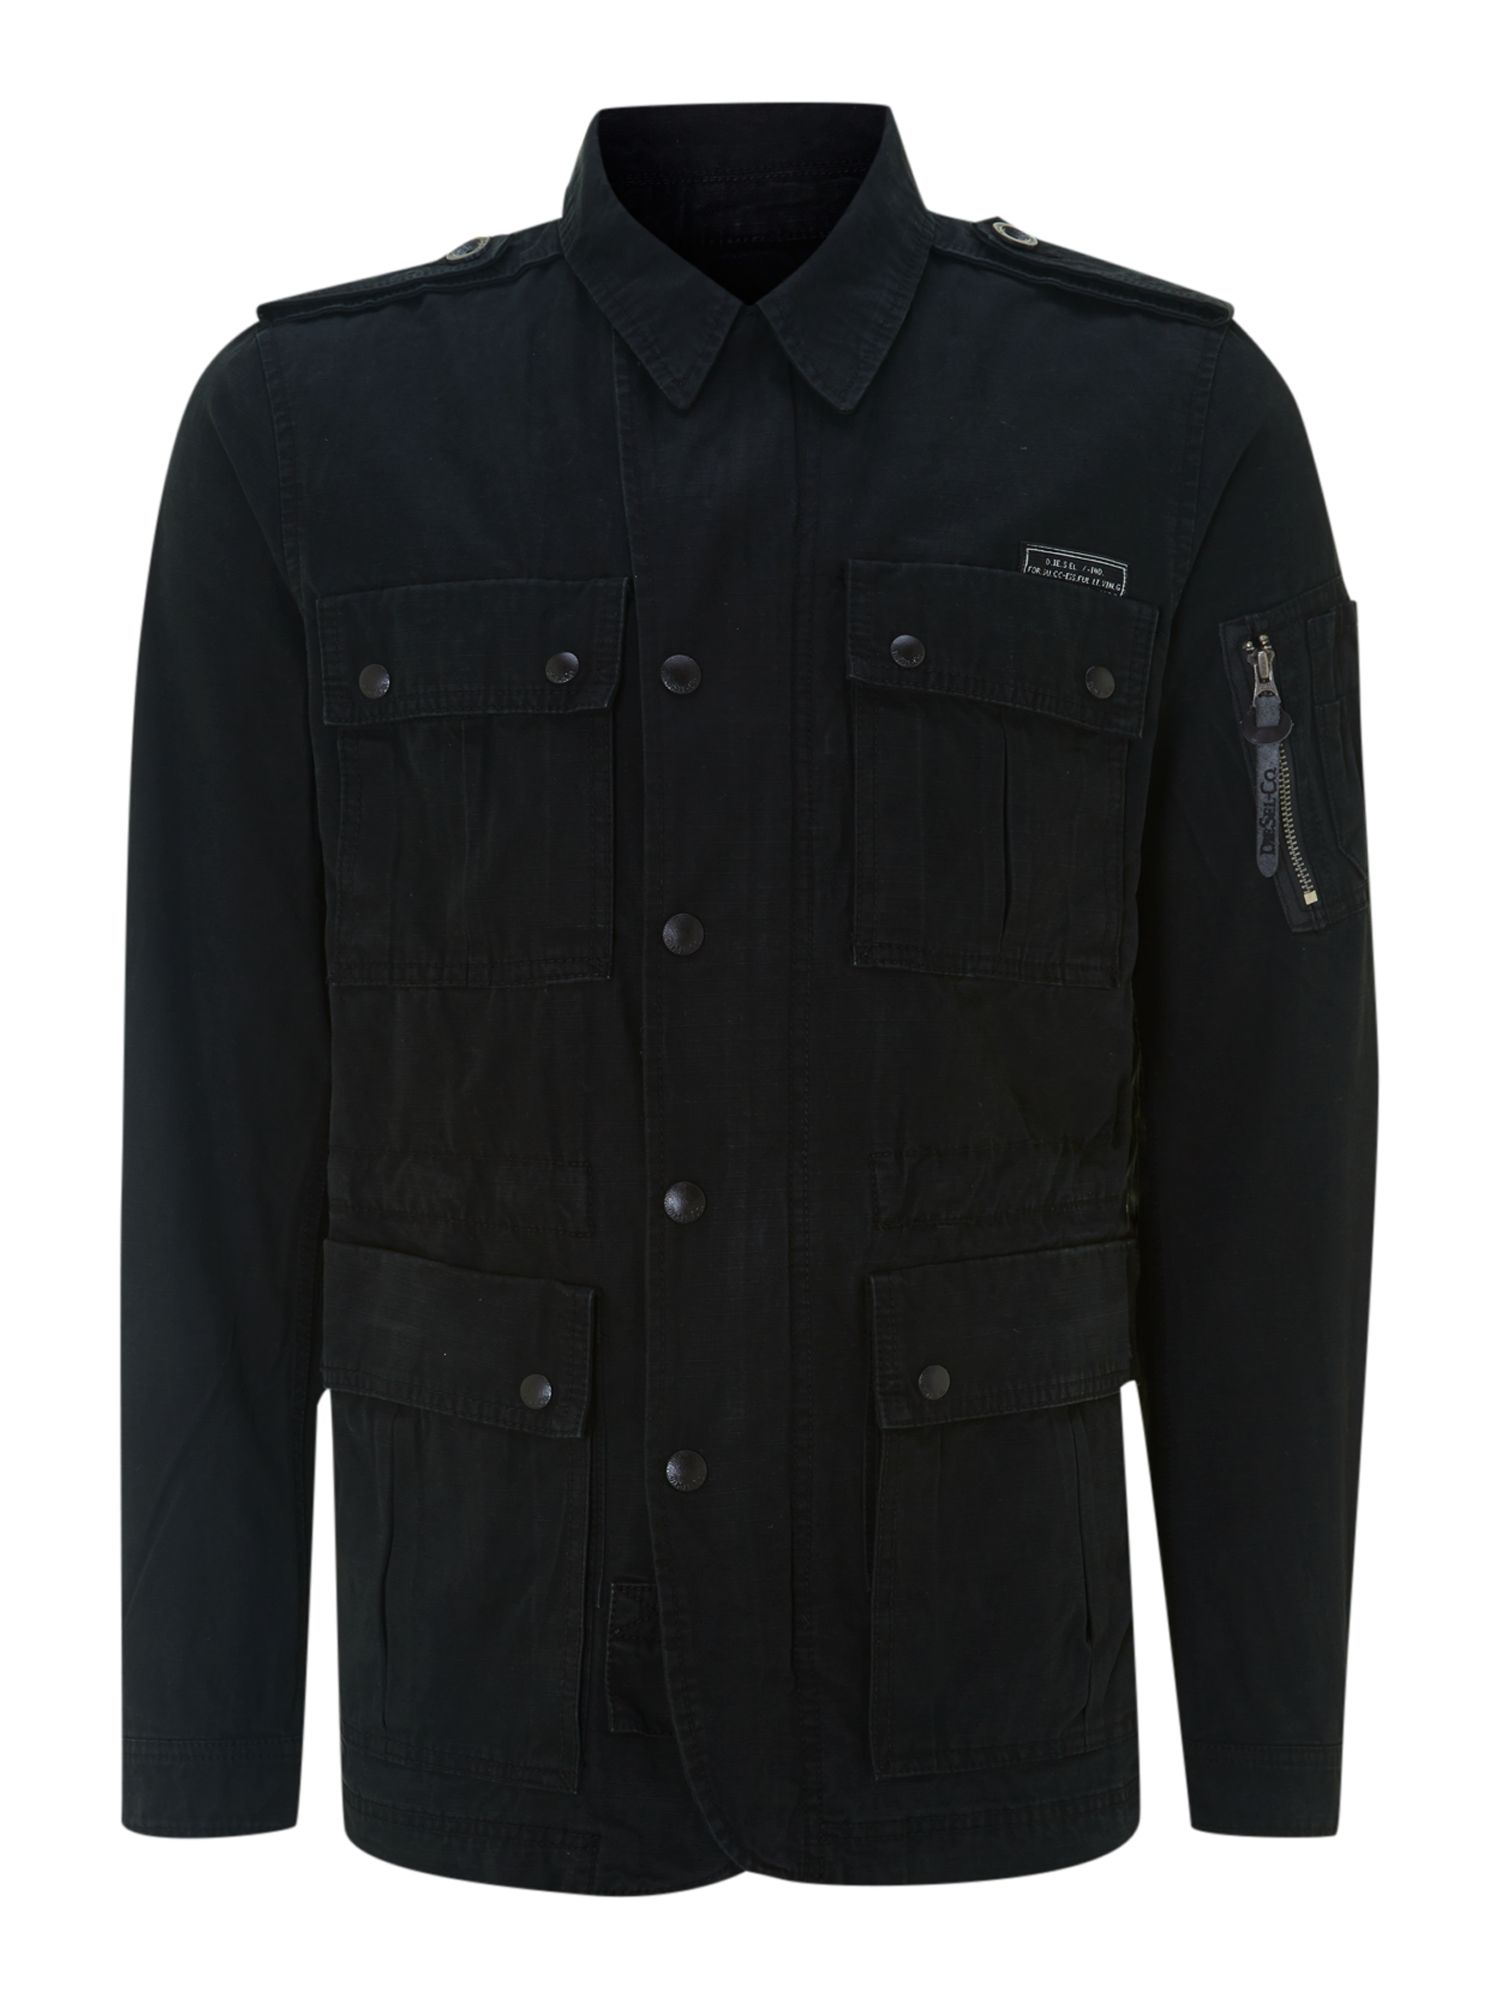 Black 4 pocket jacket